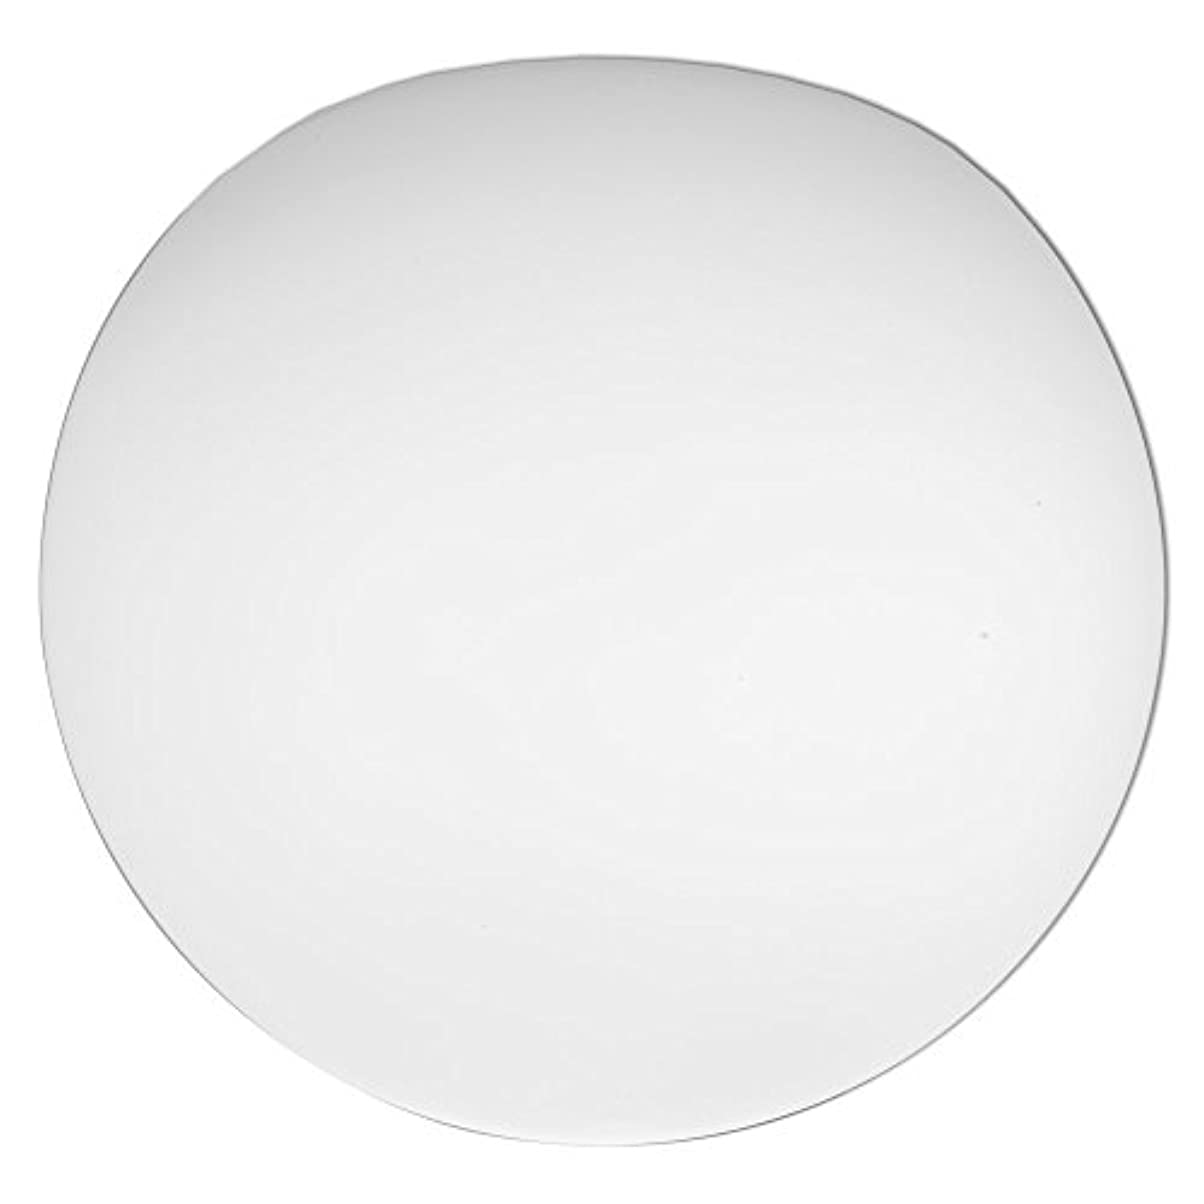 あいにく誇張するバースLithonia Lighting DGLOB6 M12 Replacement Glass Diffuser White [並行輸入品]